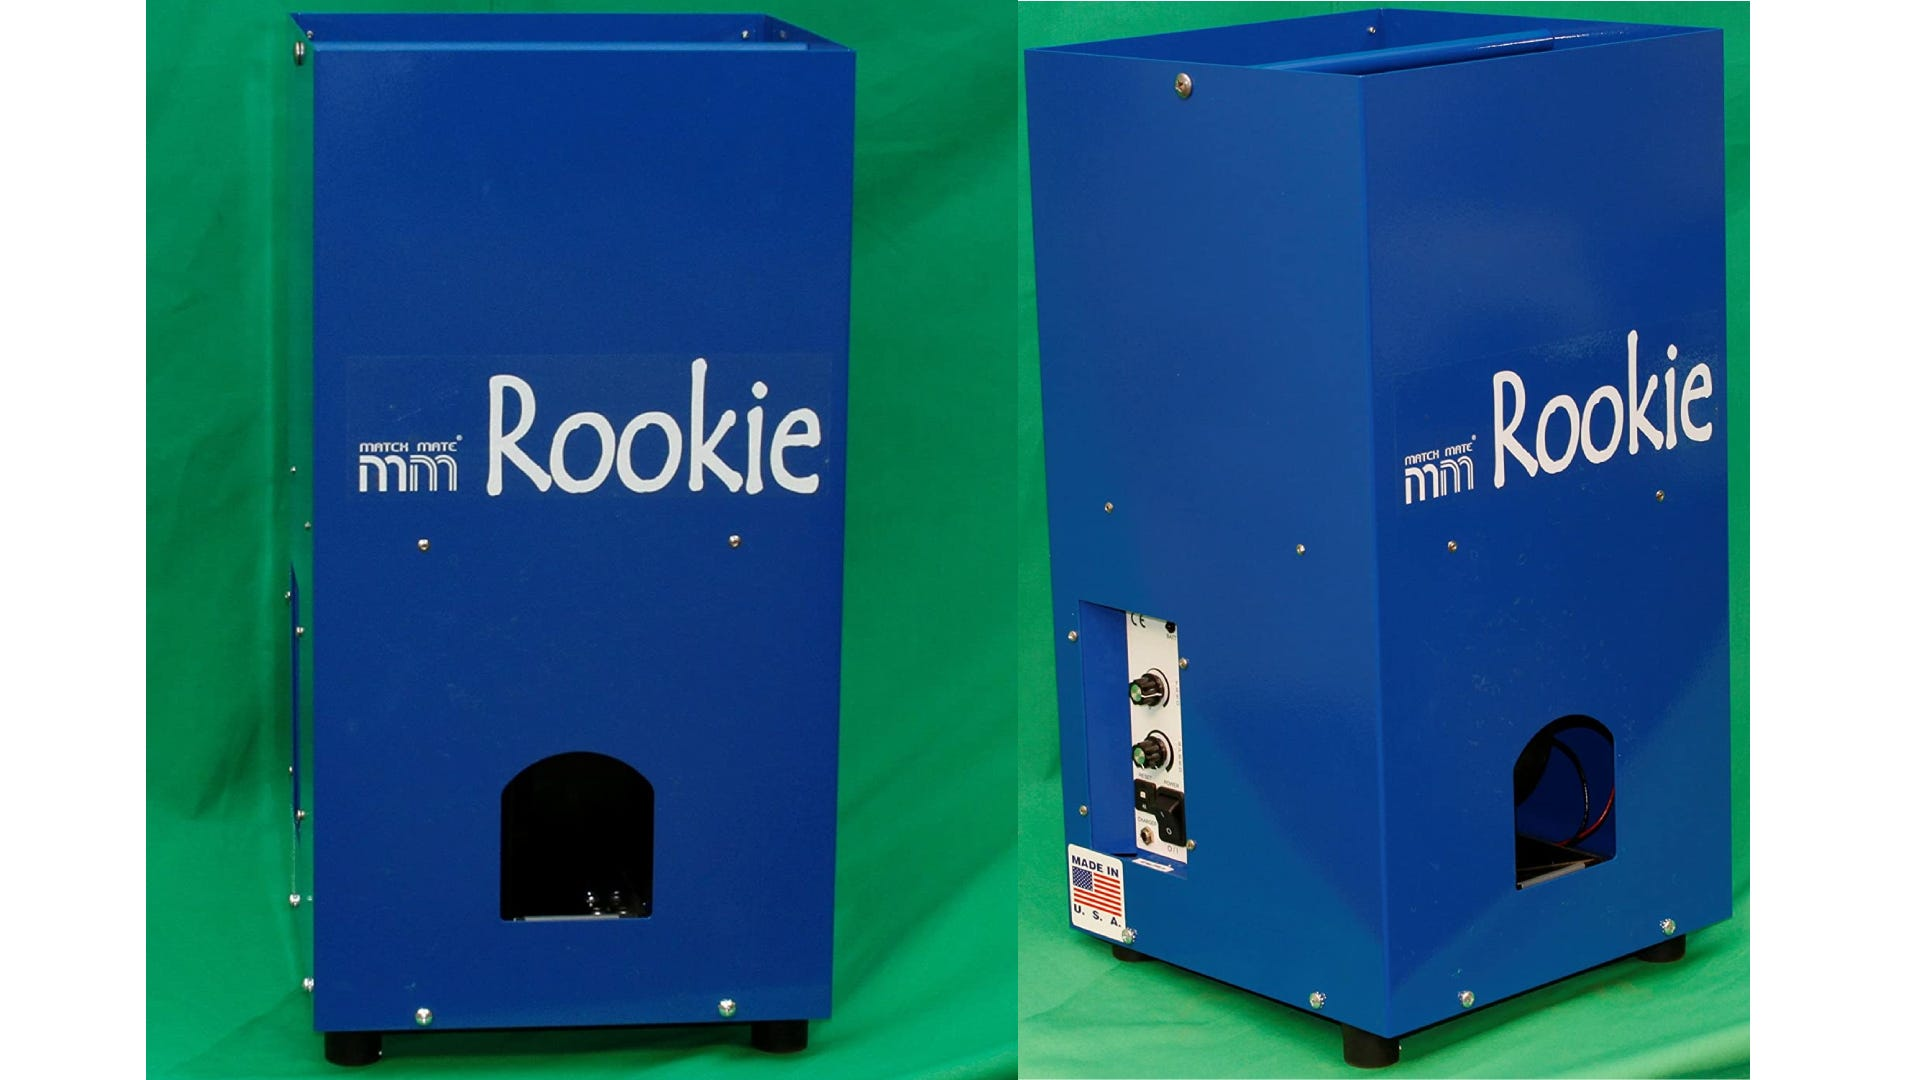 A front and side view of a blue Rookie tennis ball machine against a green background.